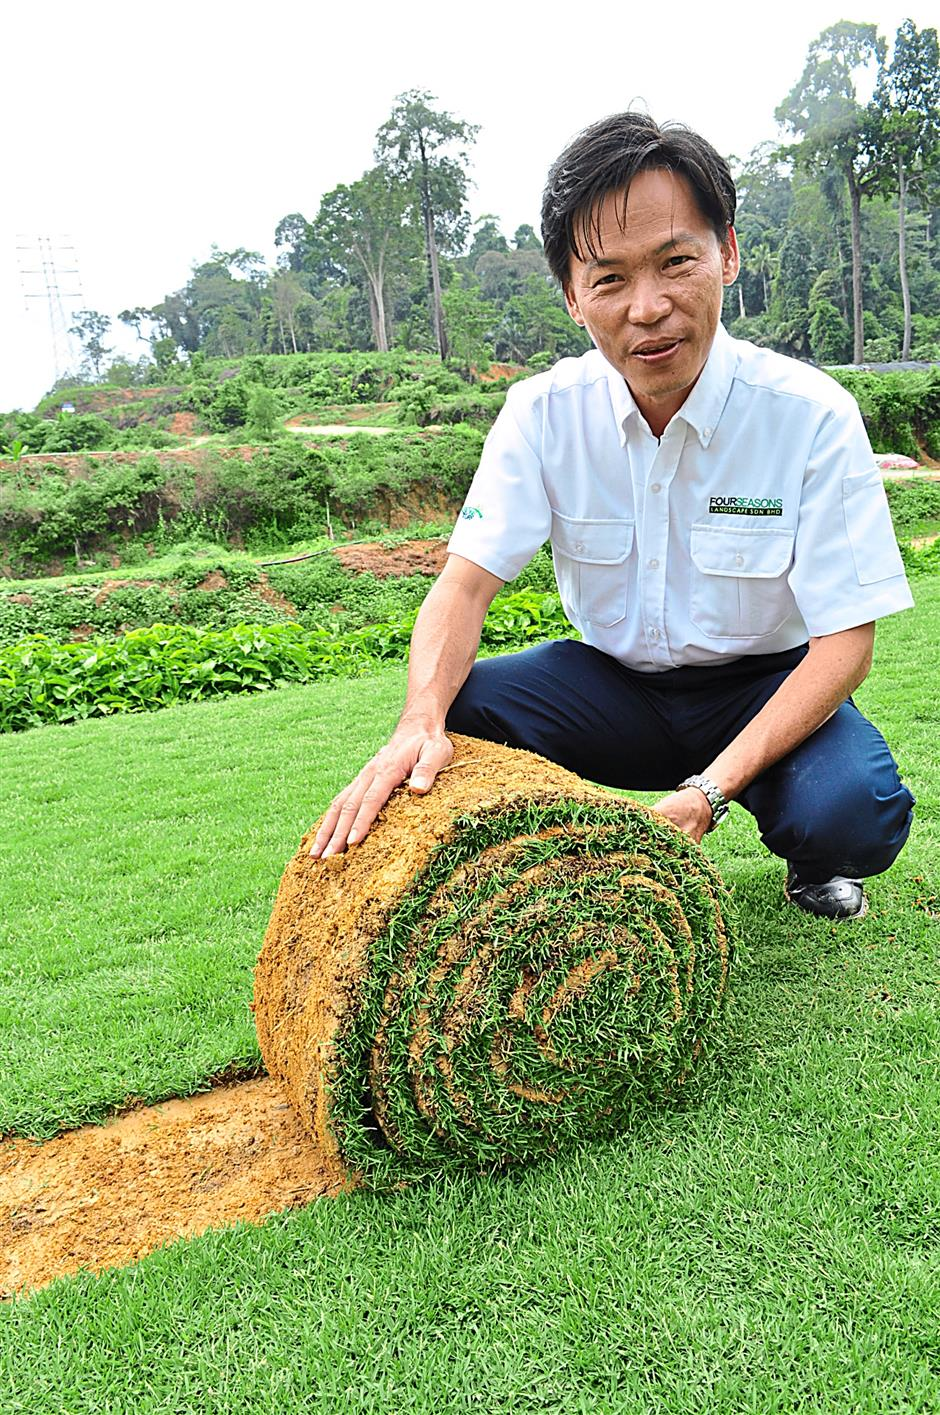 It's harvest time! Lun shows off a zoysia 'swiss roll' ready to be laid